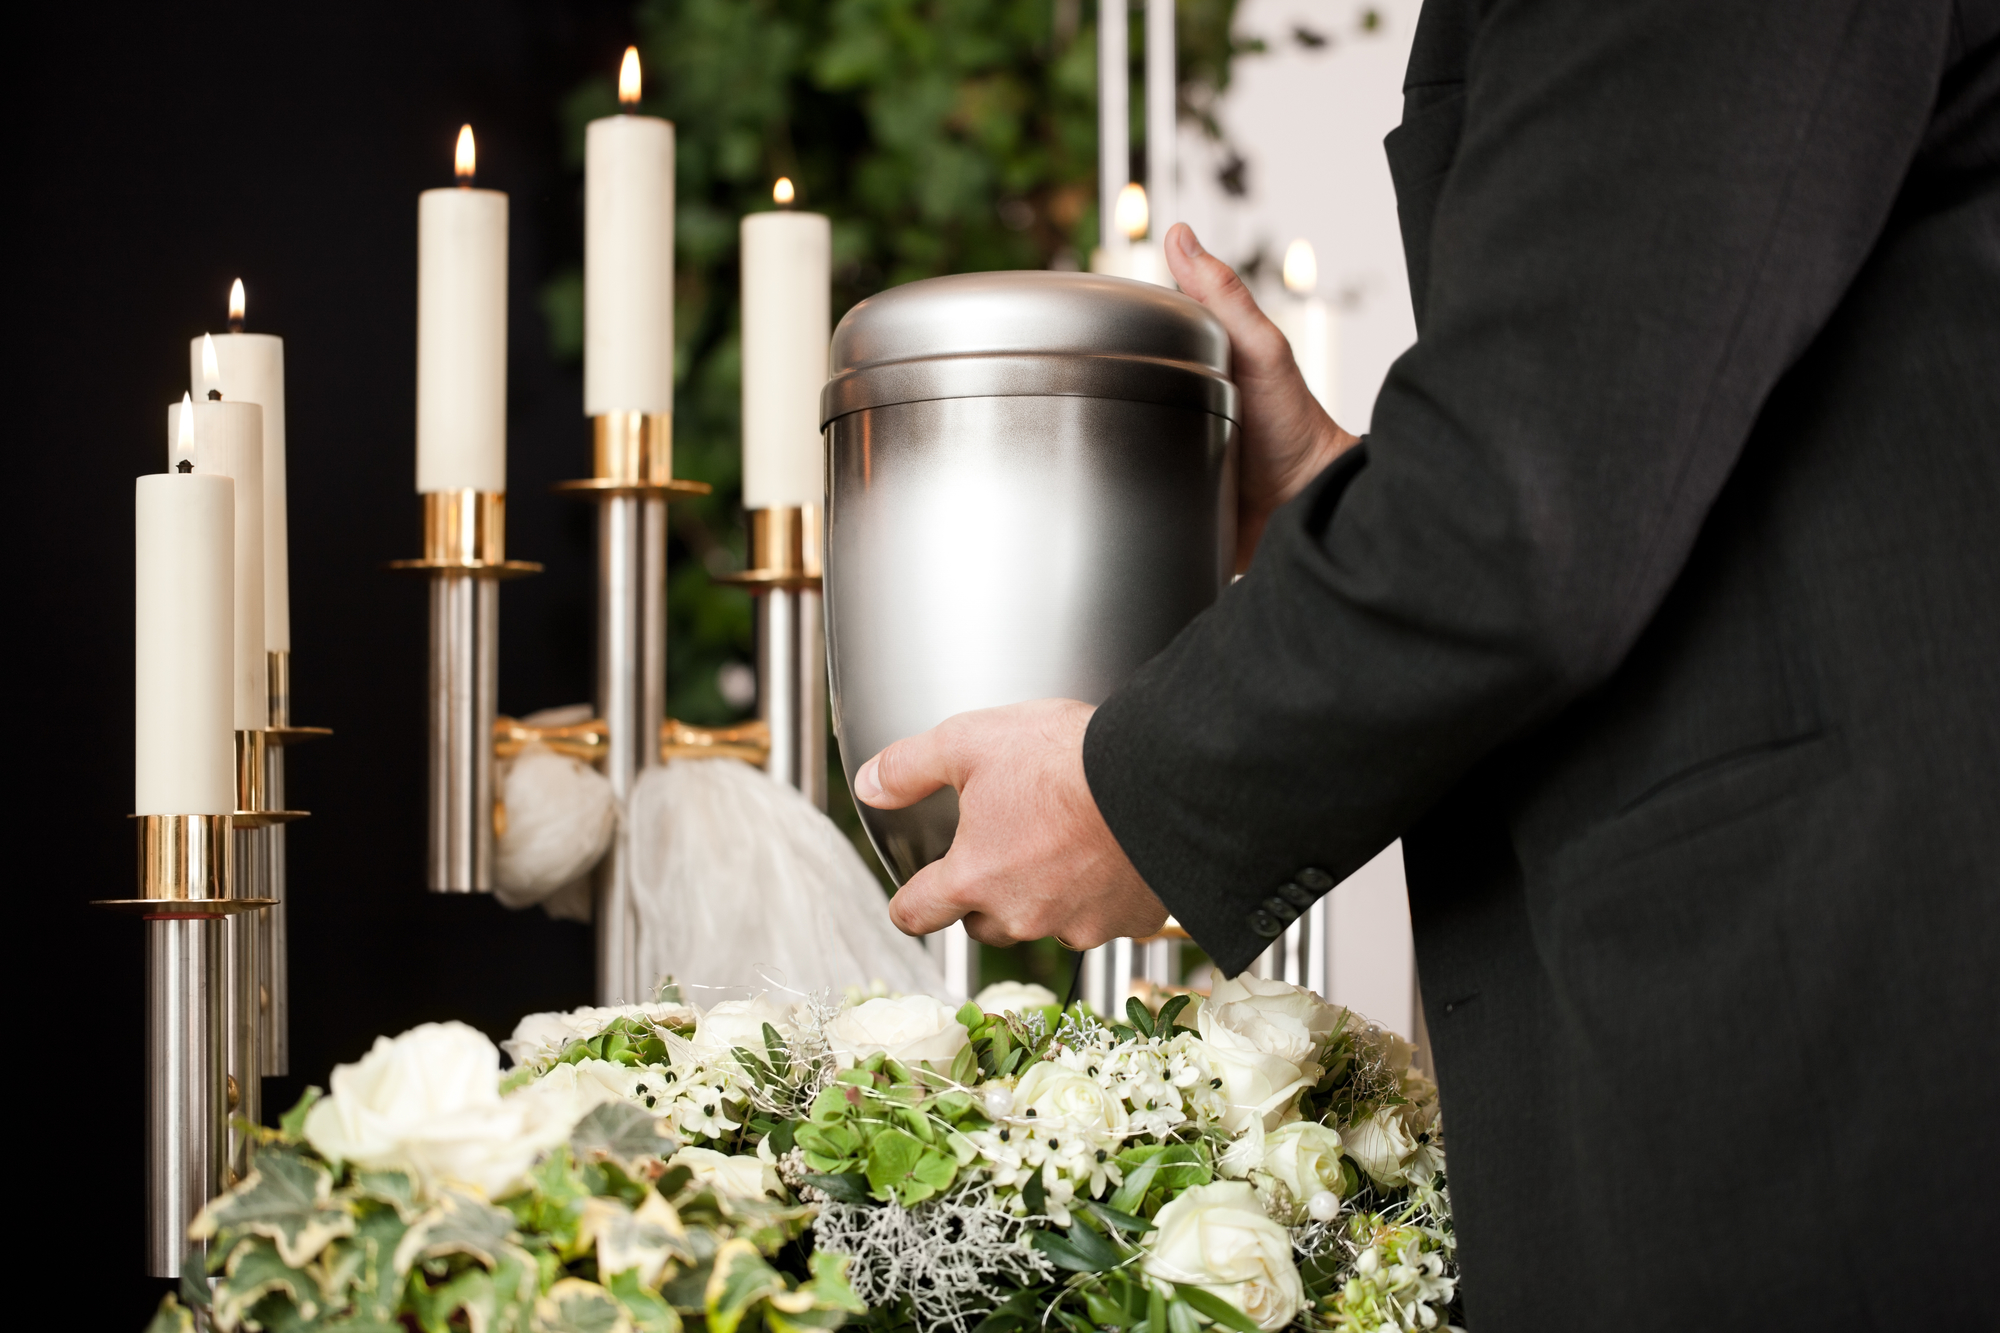 cremation-services-shirley-brothers-and-mortuaries-and-crematory